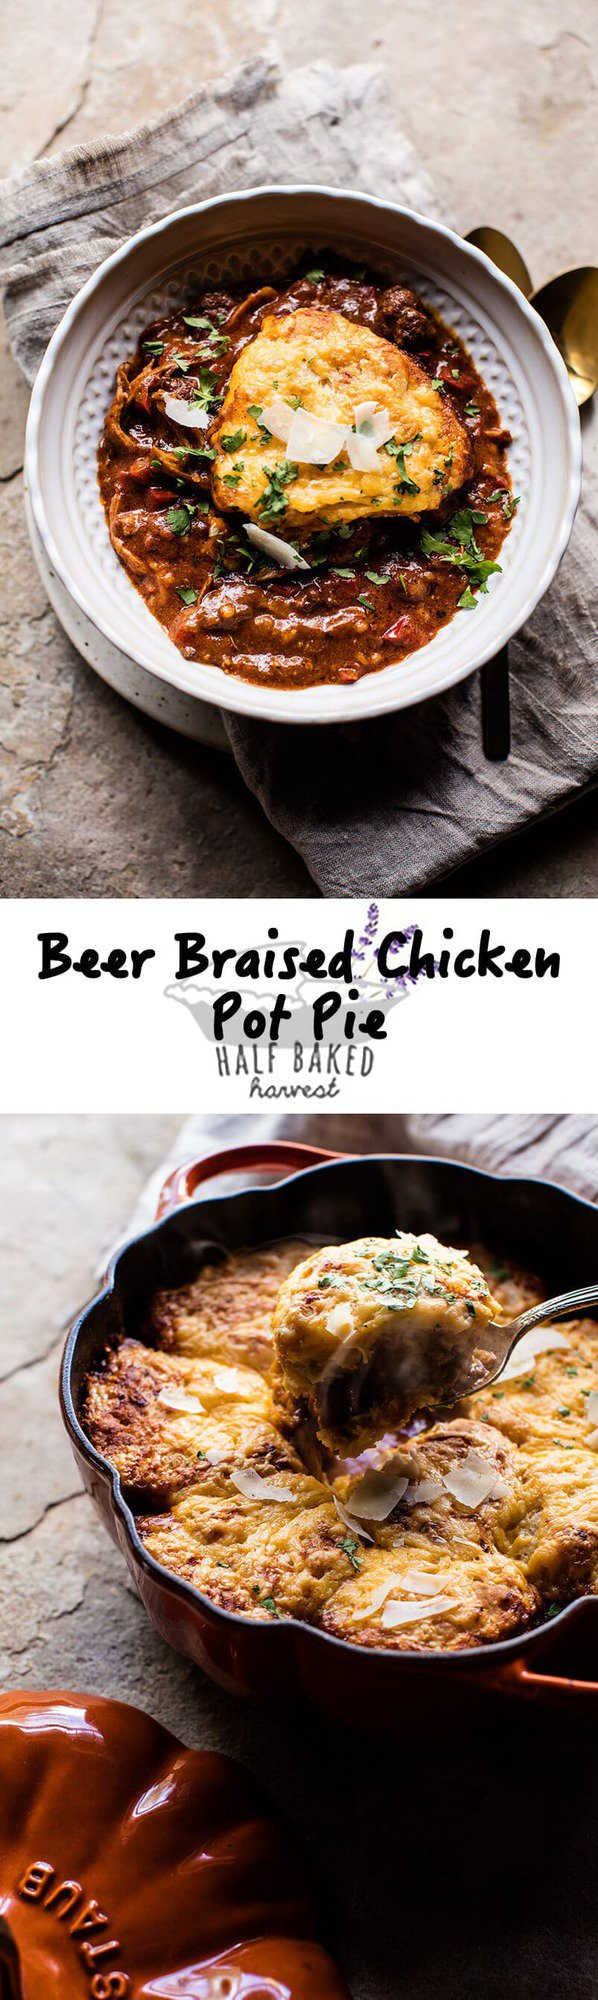 Beer Braised Chicken Pot Pie | halfbakedharvest.com @hbharvest